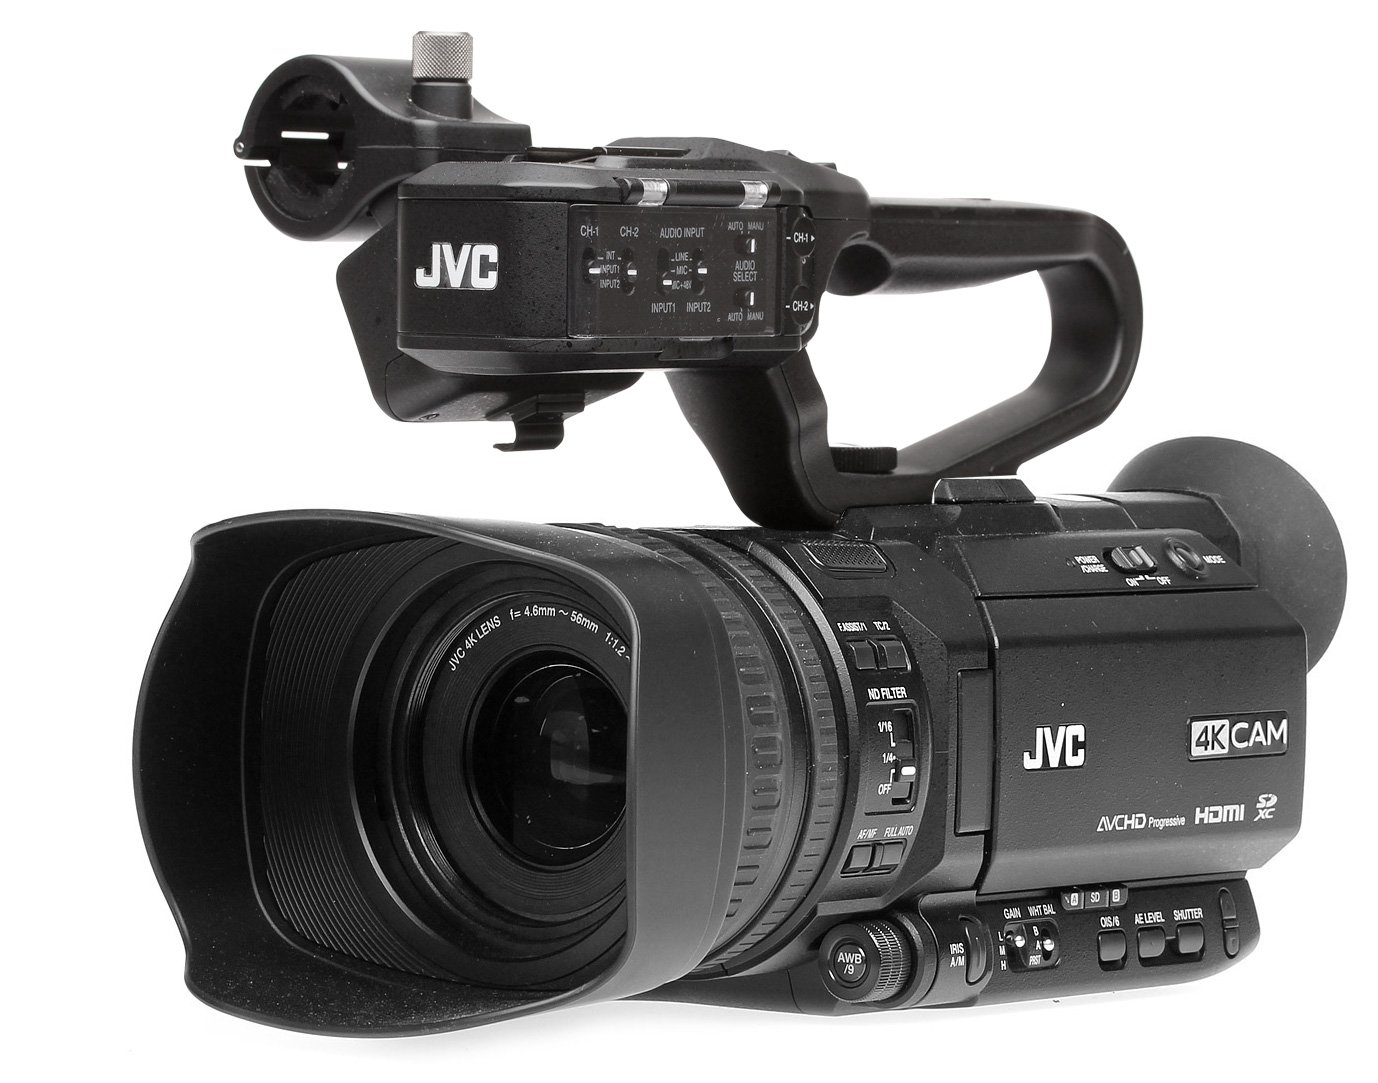 GY-HM200SP Sports Production Camcorder / Scorebot Package